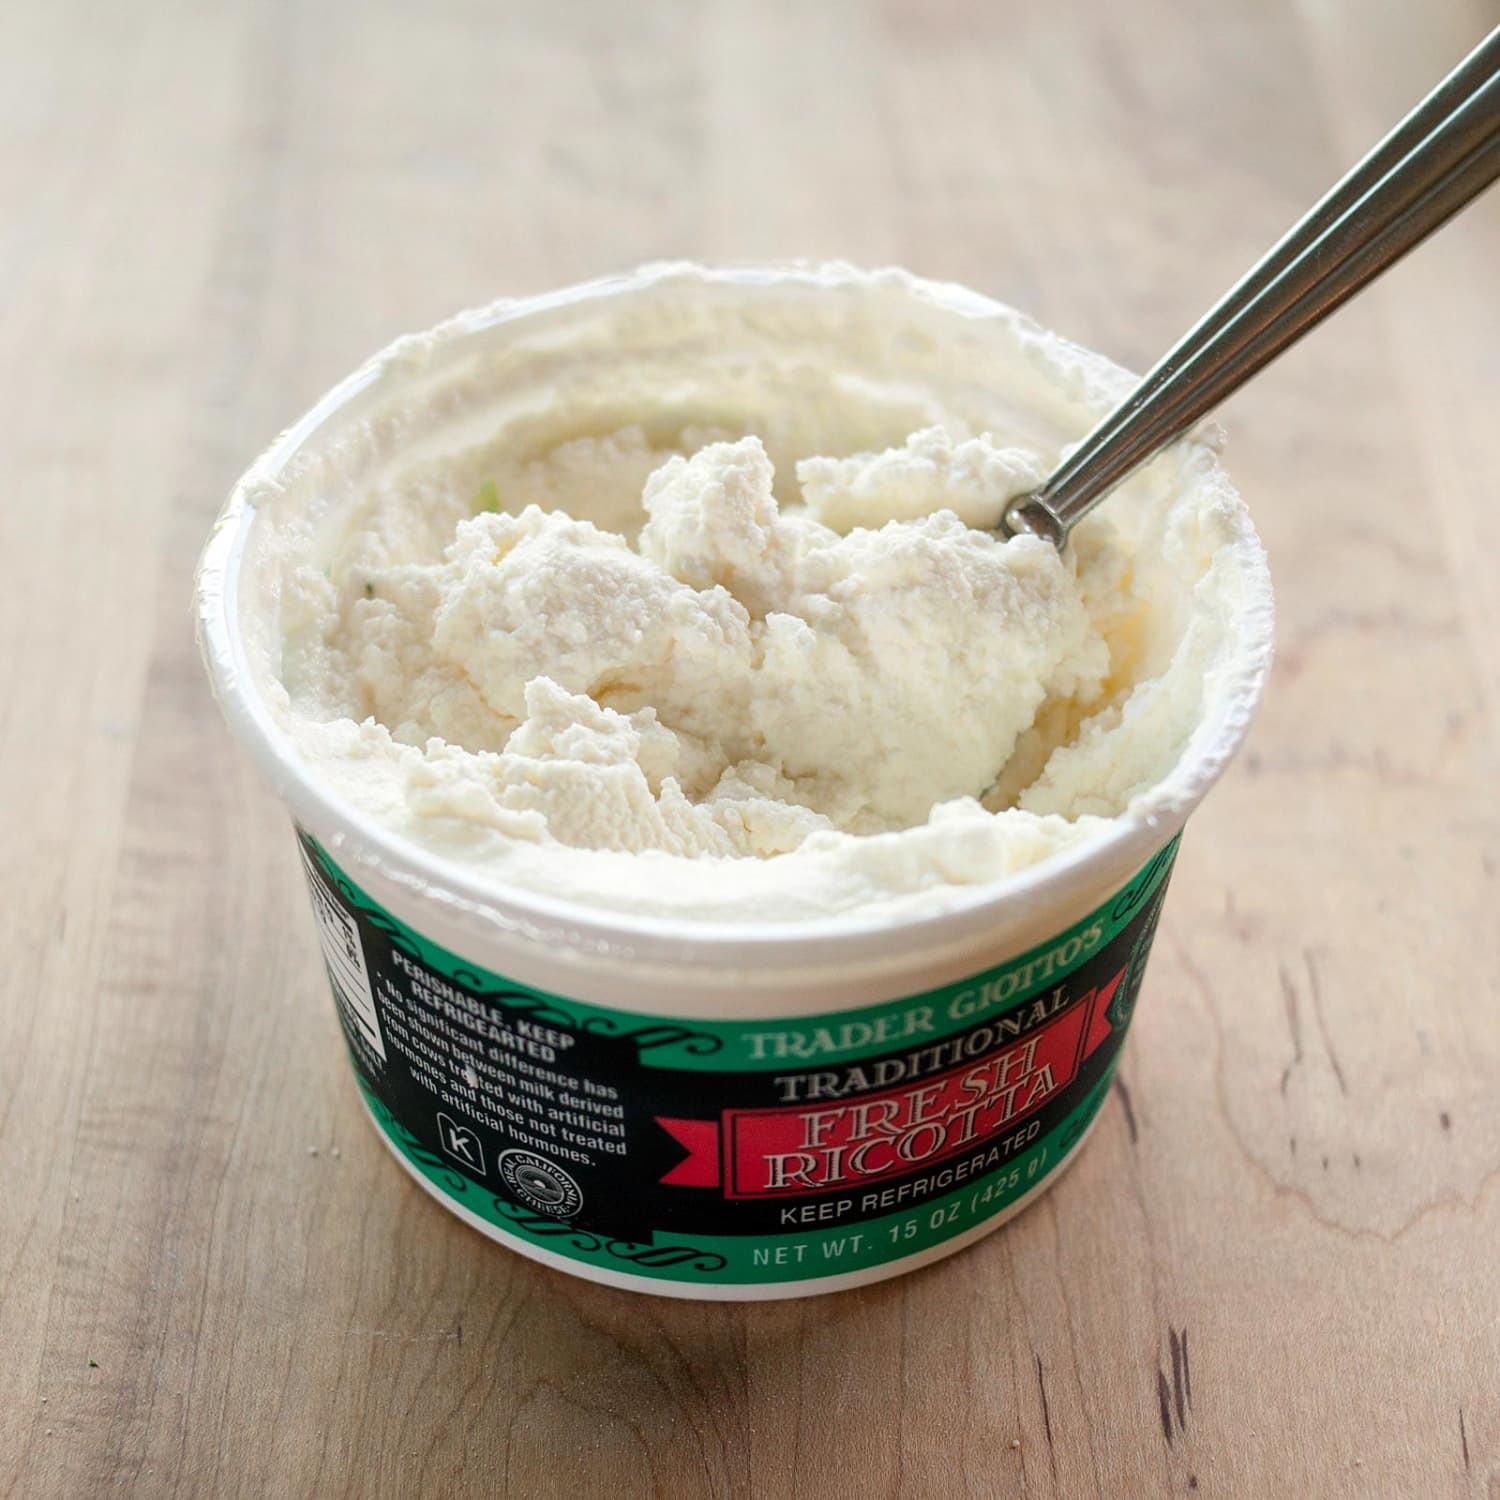 Leftover Ricotta 5 Ideas For Using Up The Rest Of The Container Kitchn